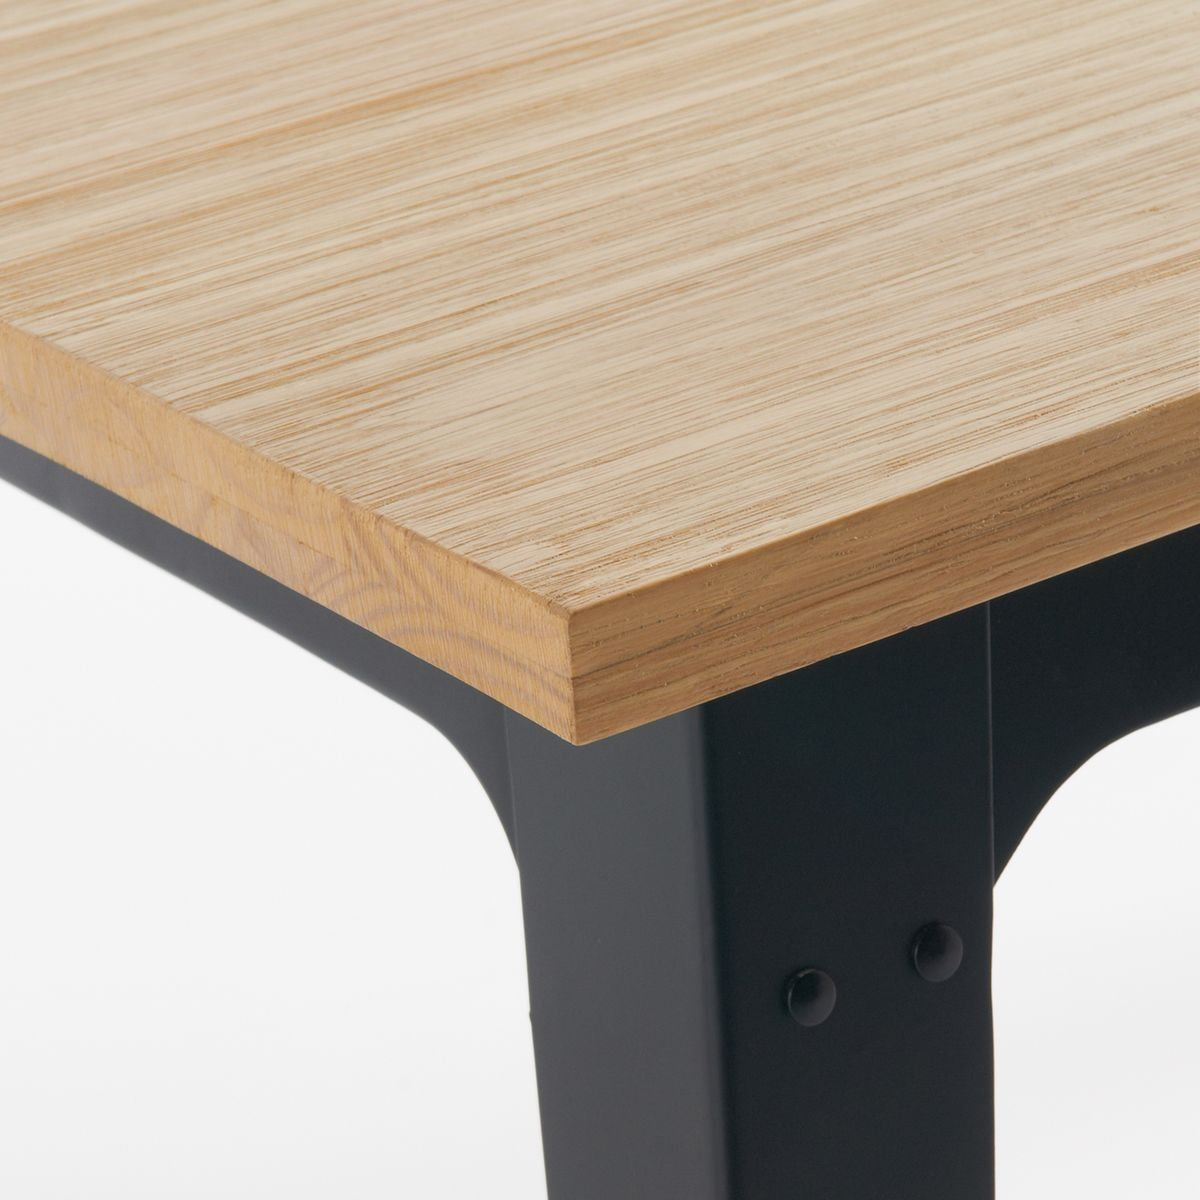 Allonges Table À 68 Taille8 Pers 2 Manger CouvertsDaffo 53jLA4R